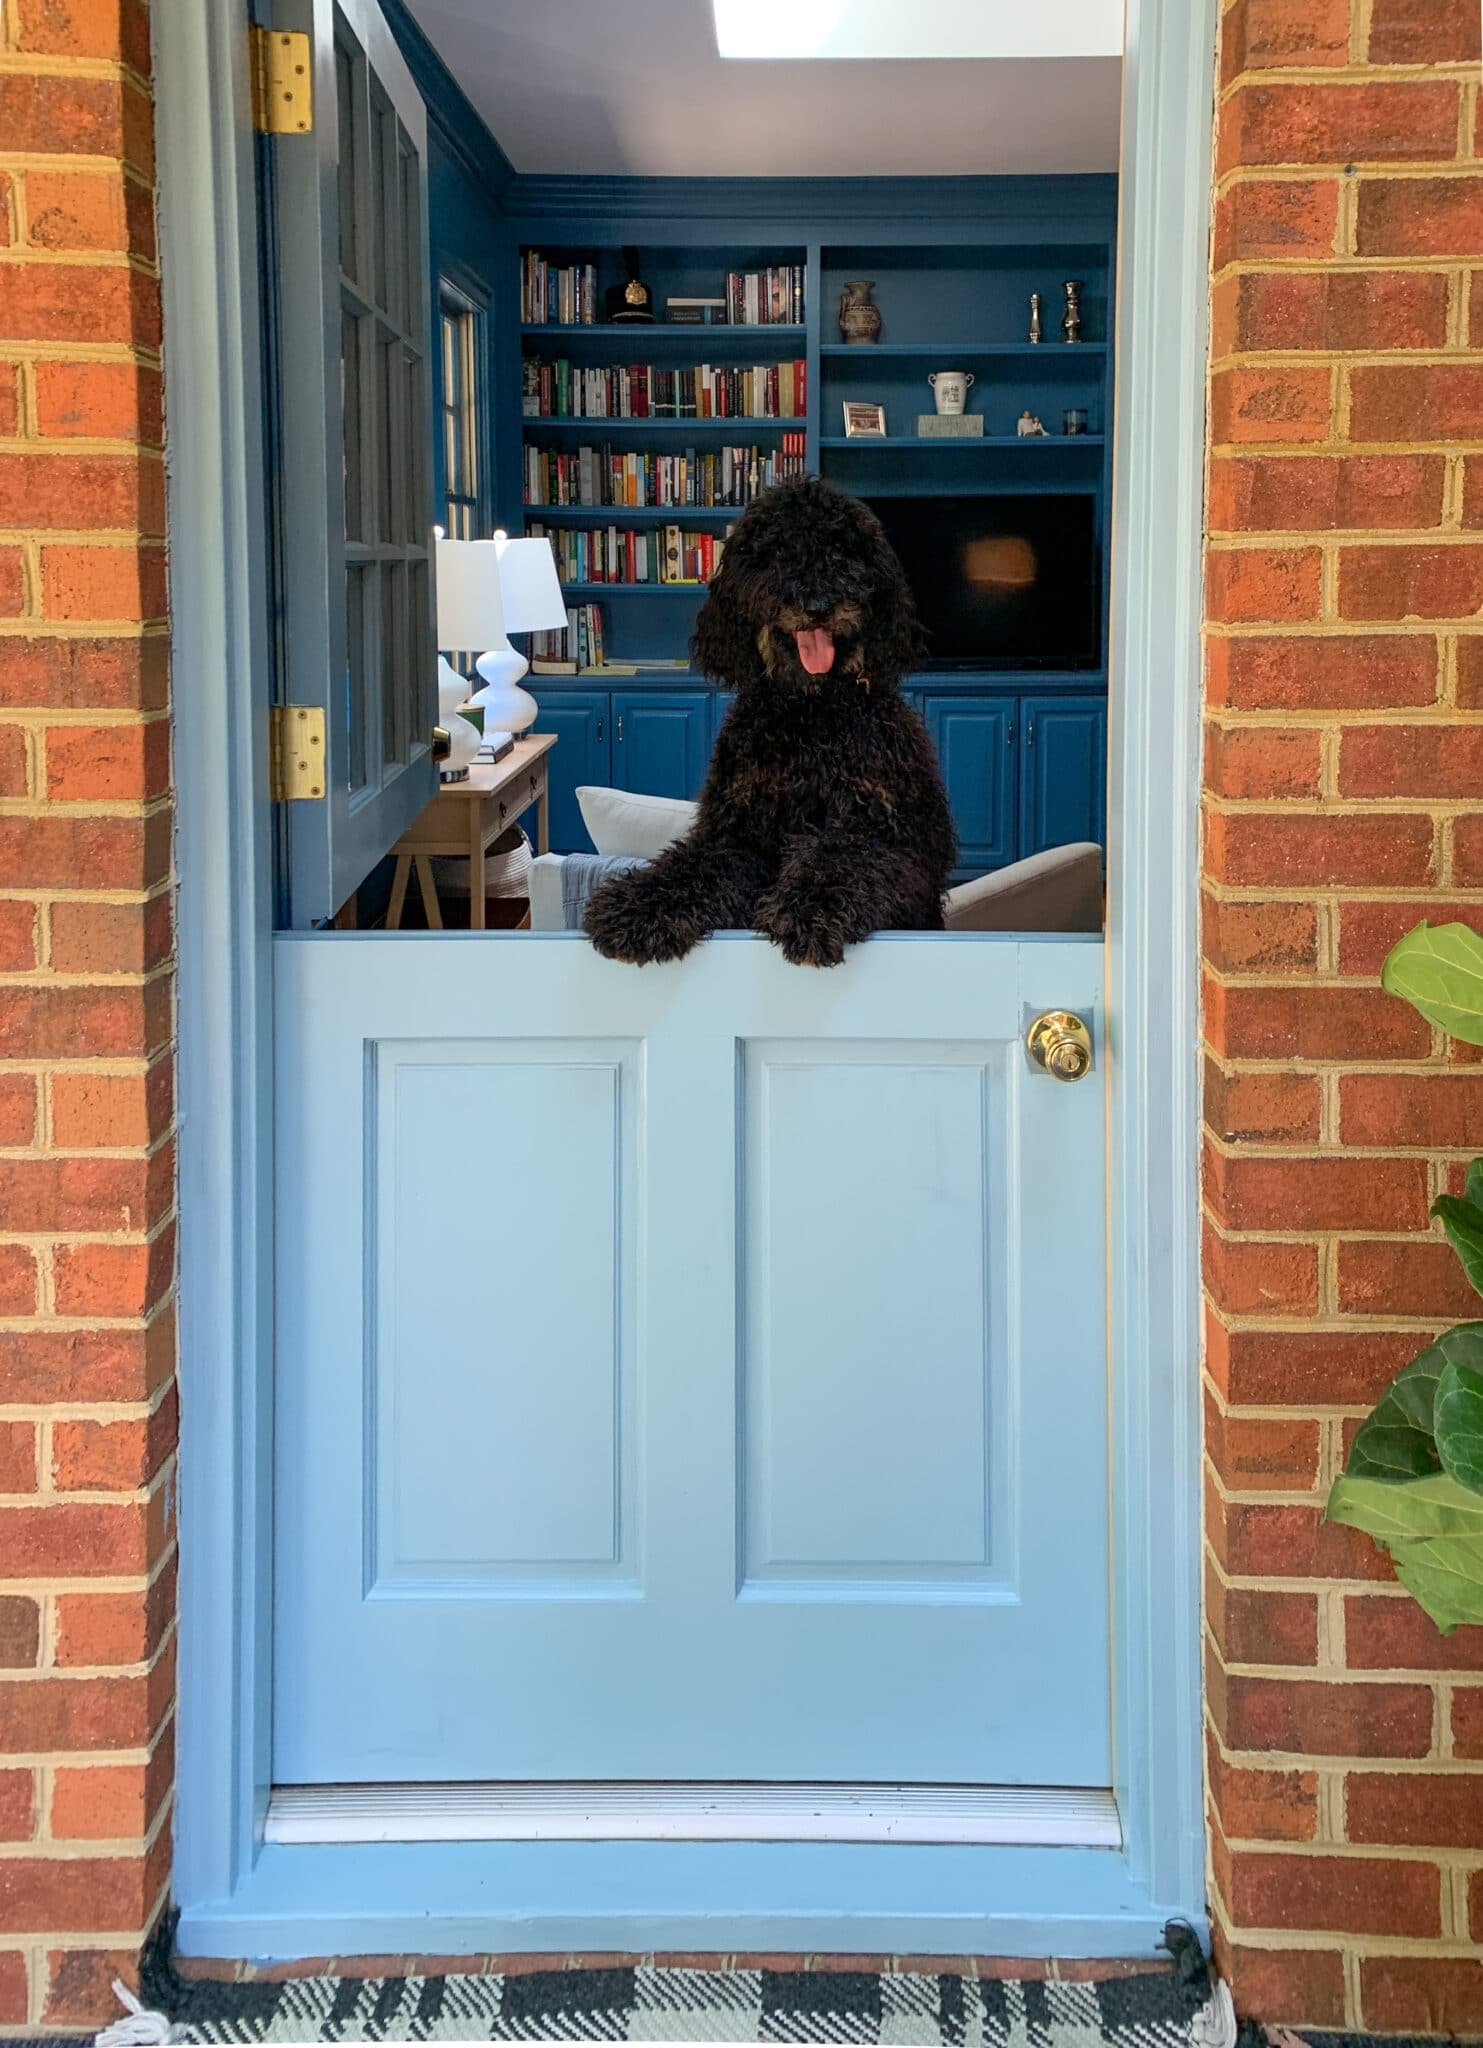 Our light blue Sherwin Williams Dutch Door open with the black dog peeking out.